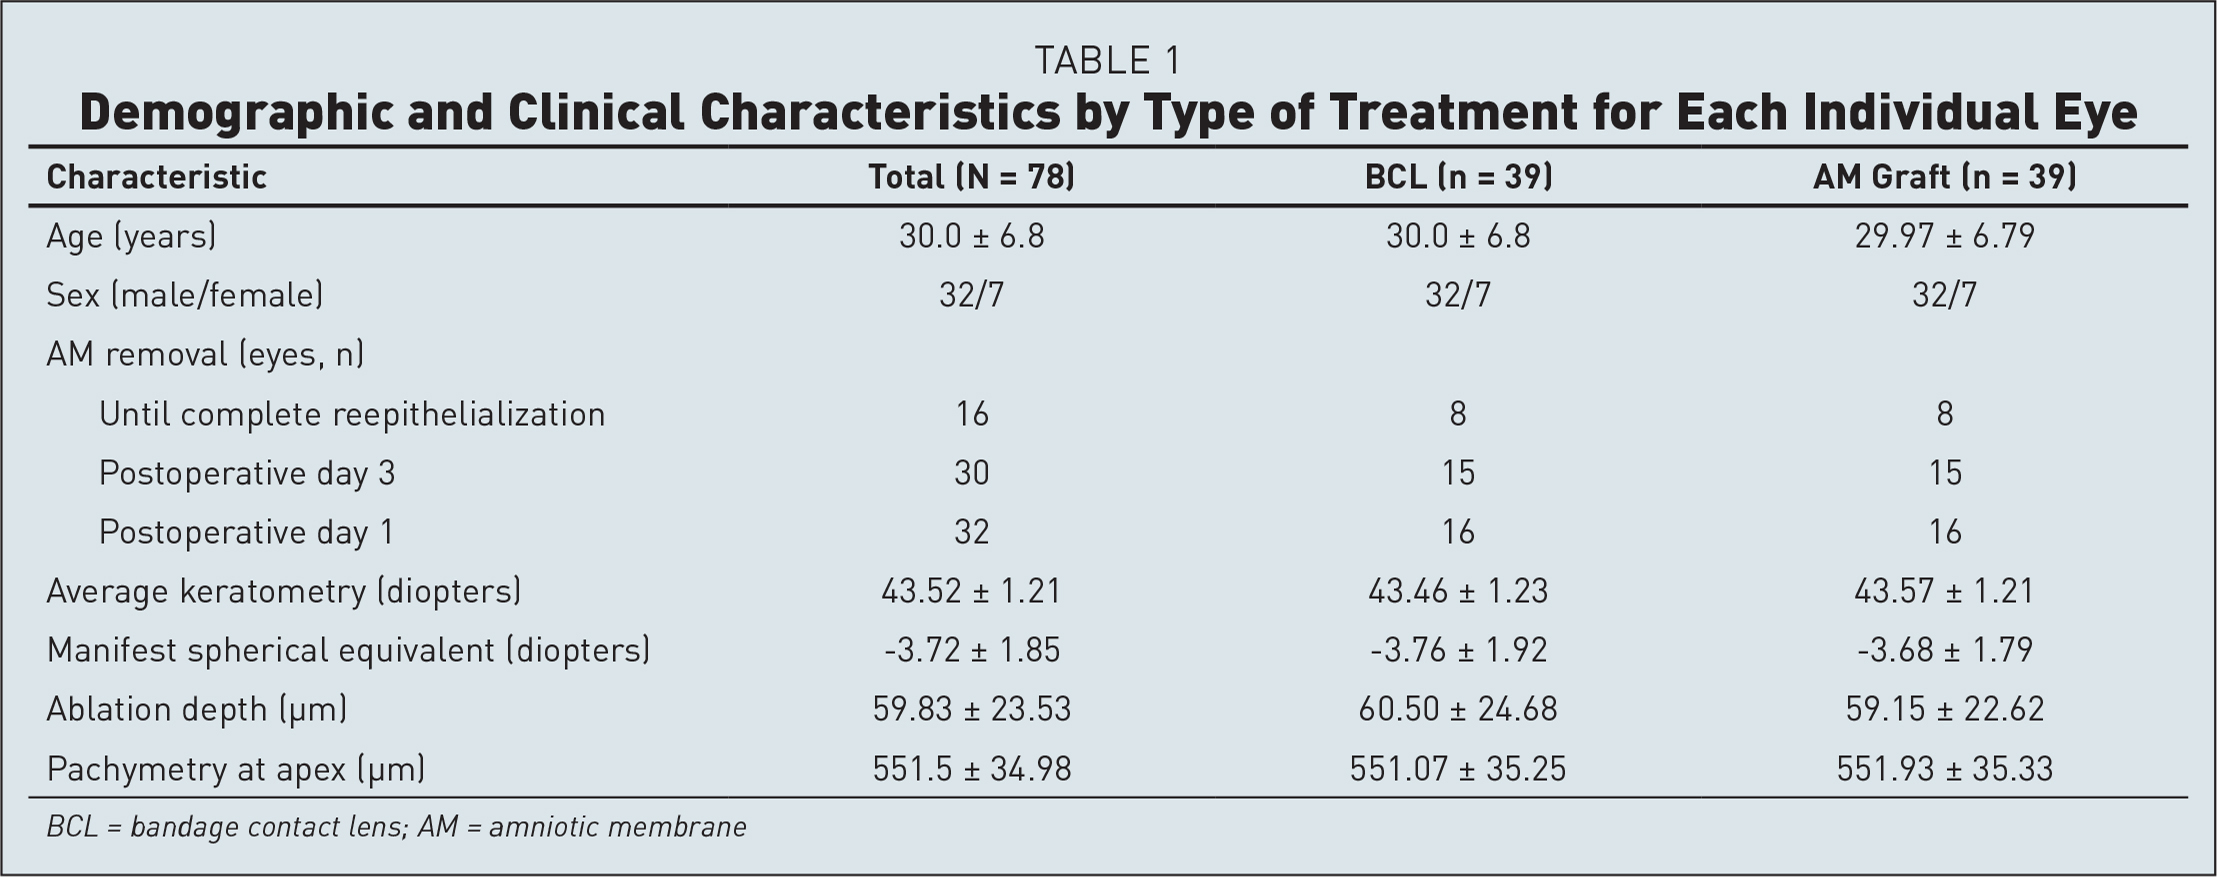 Demographic and Clinical Characteristics by Type of Treatment for Each Individual Eye